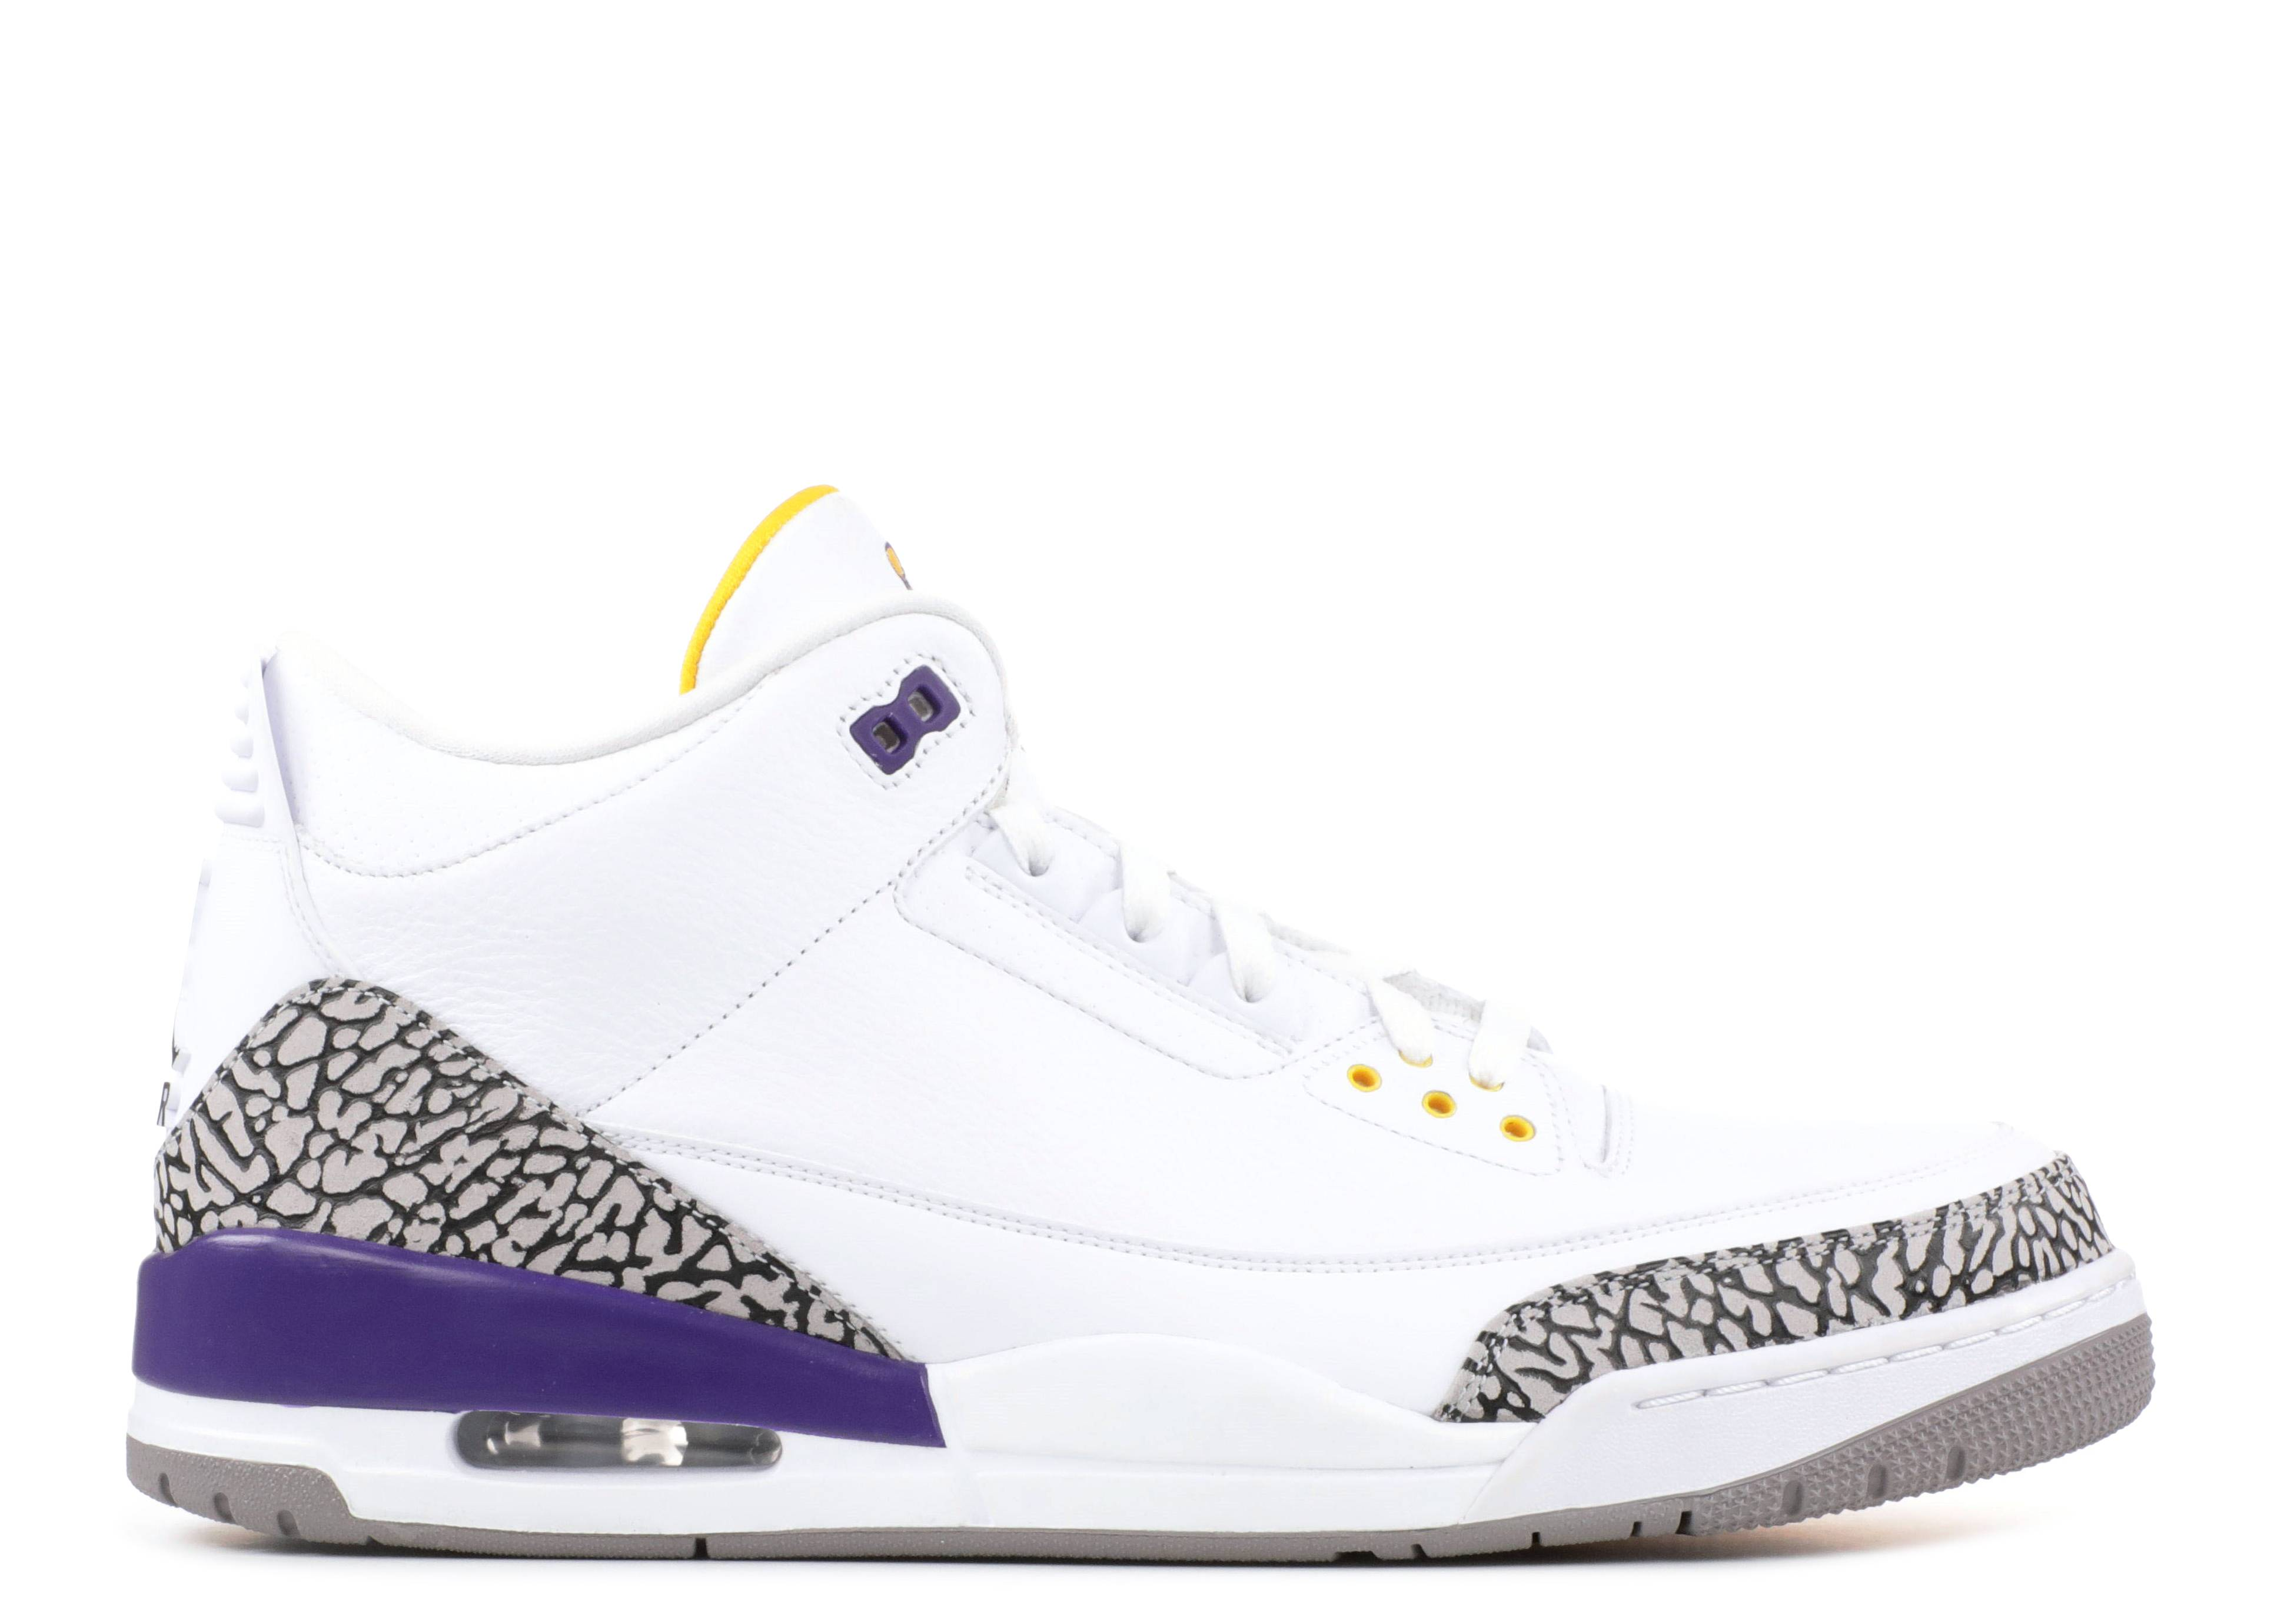 reputable site 90f2e 1b18f air jordan 3 retro